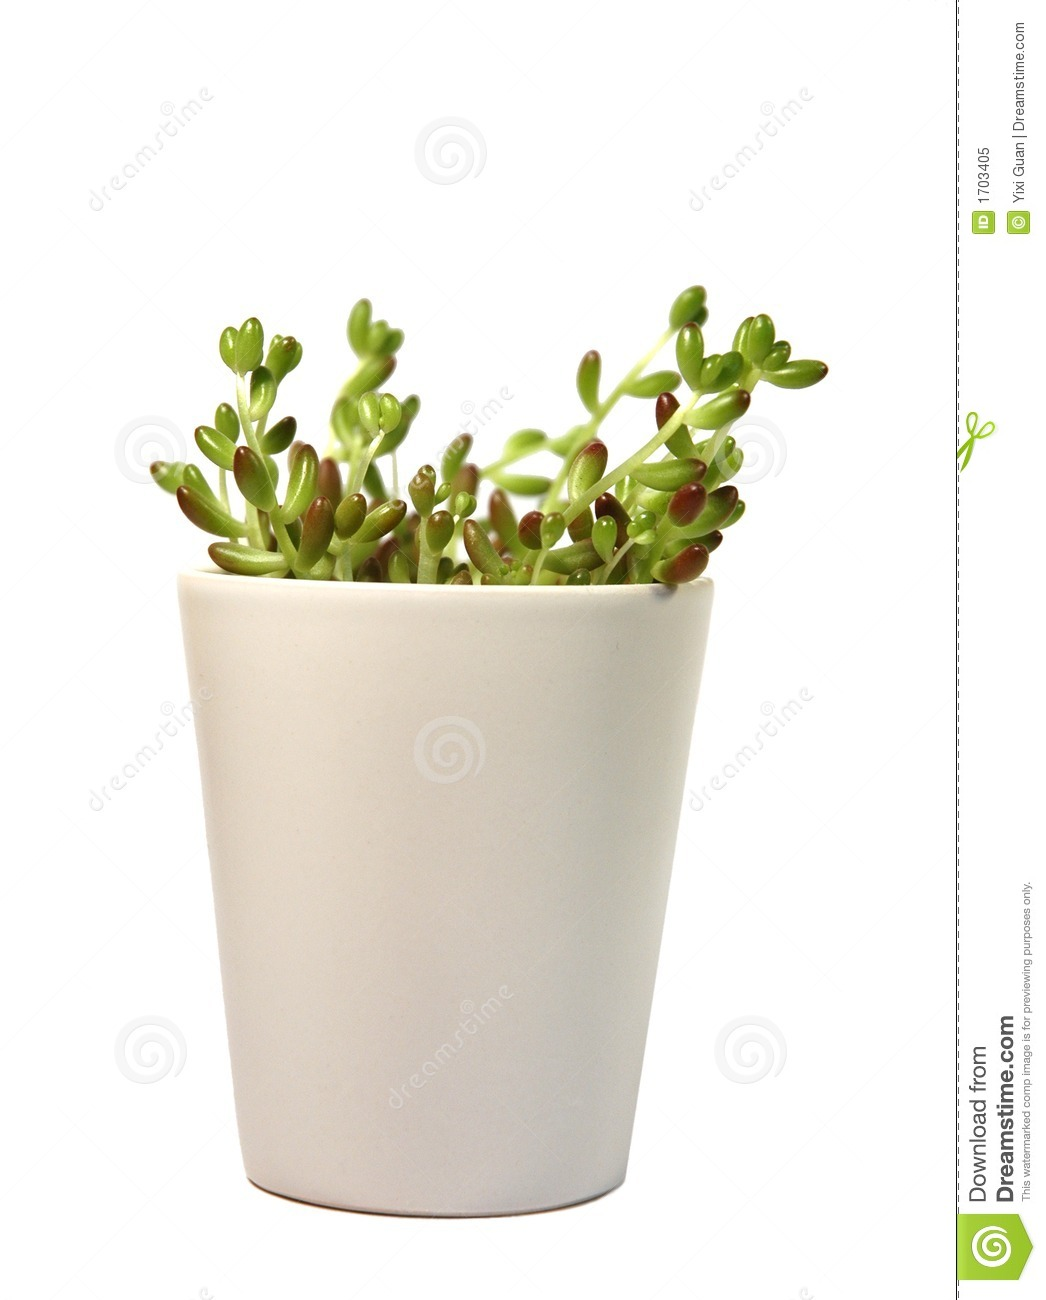 green plant in white flowerpot stock image - image: 1703405